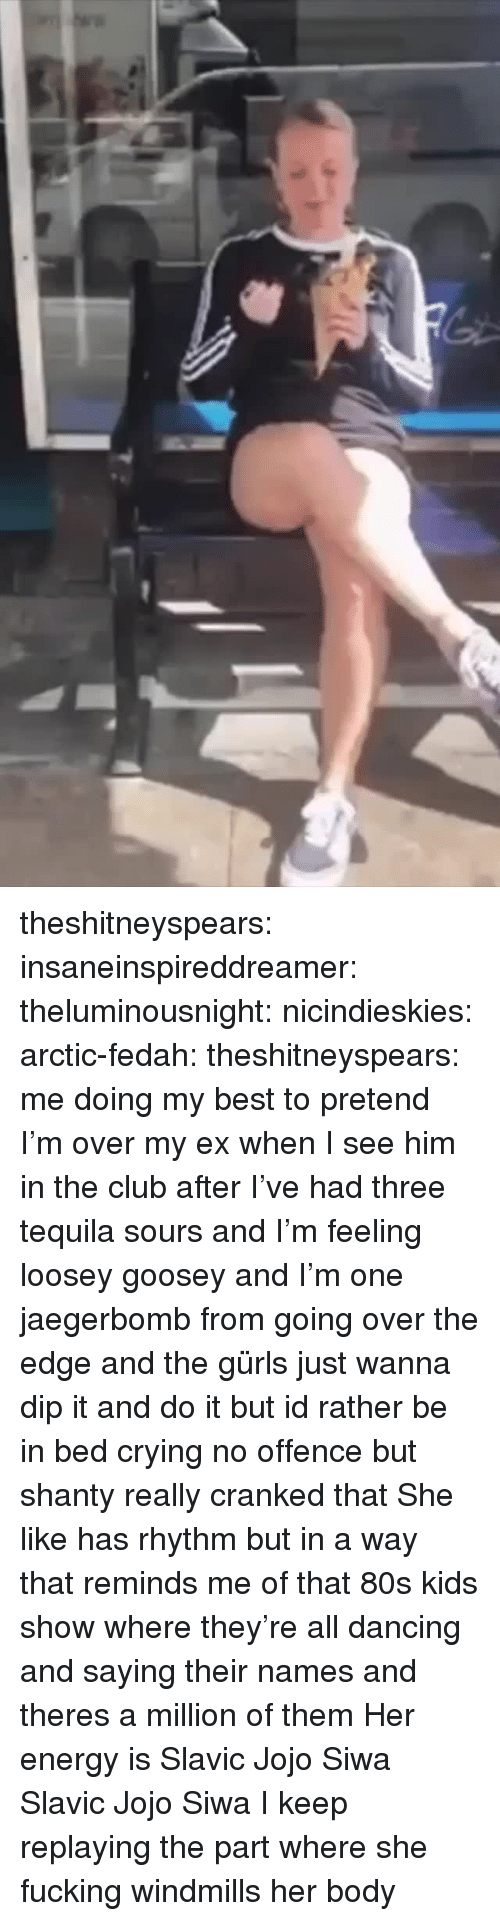 windmills: theshitneyspears: insaneinspireddreamer:   theluminousnight:   nicindieskies:  arctic-fedah:   theshitneyspears:  me doing my best to pretend I'm over my ex when I see him in the club after I've had three tequila sours and I'm feeling loosey goosey and I'm one jaegerbomb from going over the edge and the gürls just wanna dip it and do it but id rather be in bed crying  no offence but shanty really cranked that   She like has rhythm but in a way that reminds me of that 80s kids show where they're all dancing and saying their names and theres a million of them  Her energy is Slavic Jojo Siwa   Slavic Jojo Siwa   I keep replaying the part where she fucking windmills her body